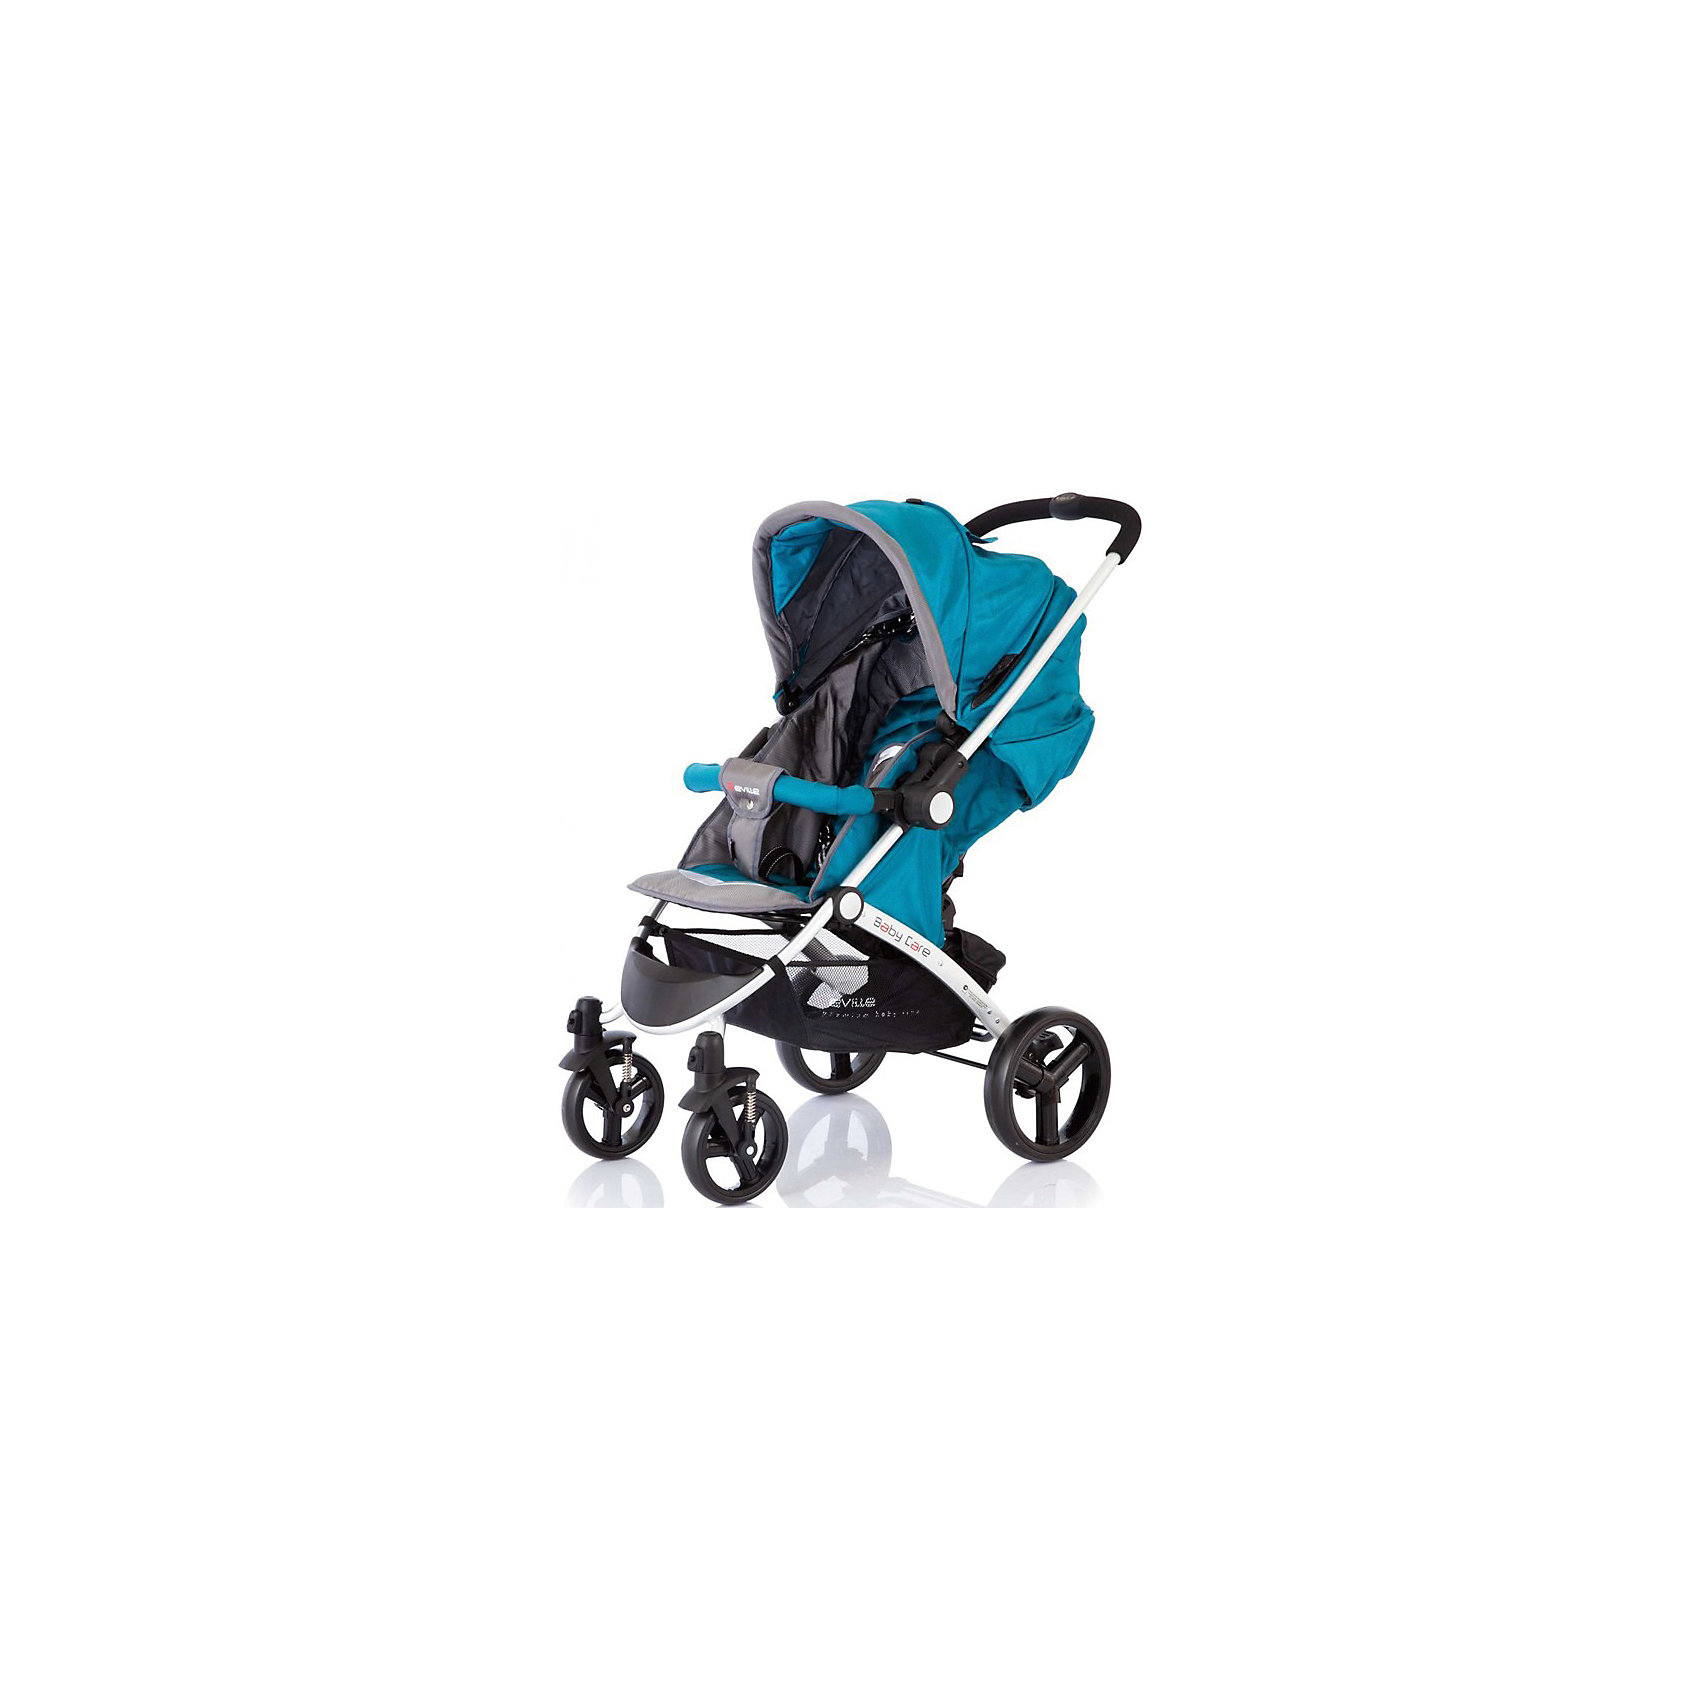 Baby Care Прогулочная коляска Seville, Baby Care, Grey/Blue цена и фото